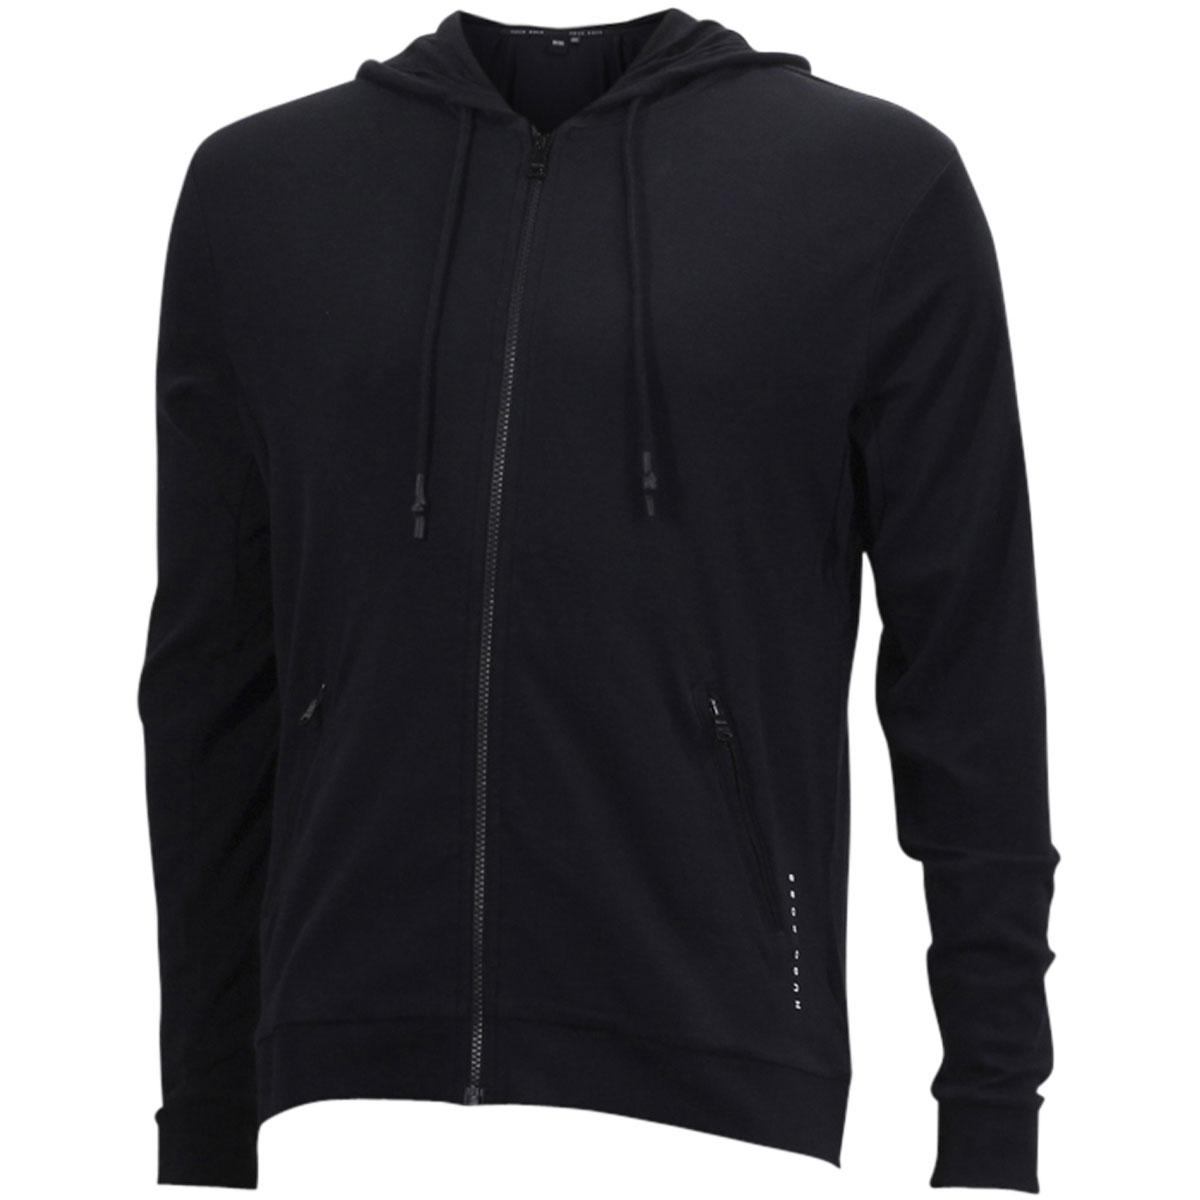 cb989531d Hugo Boss Men's Interlock Cotton Zip-Through Hooded Sweatshirt Jacket